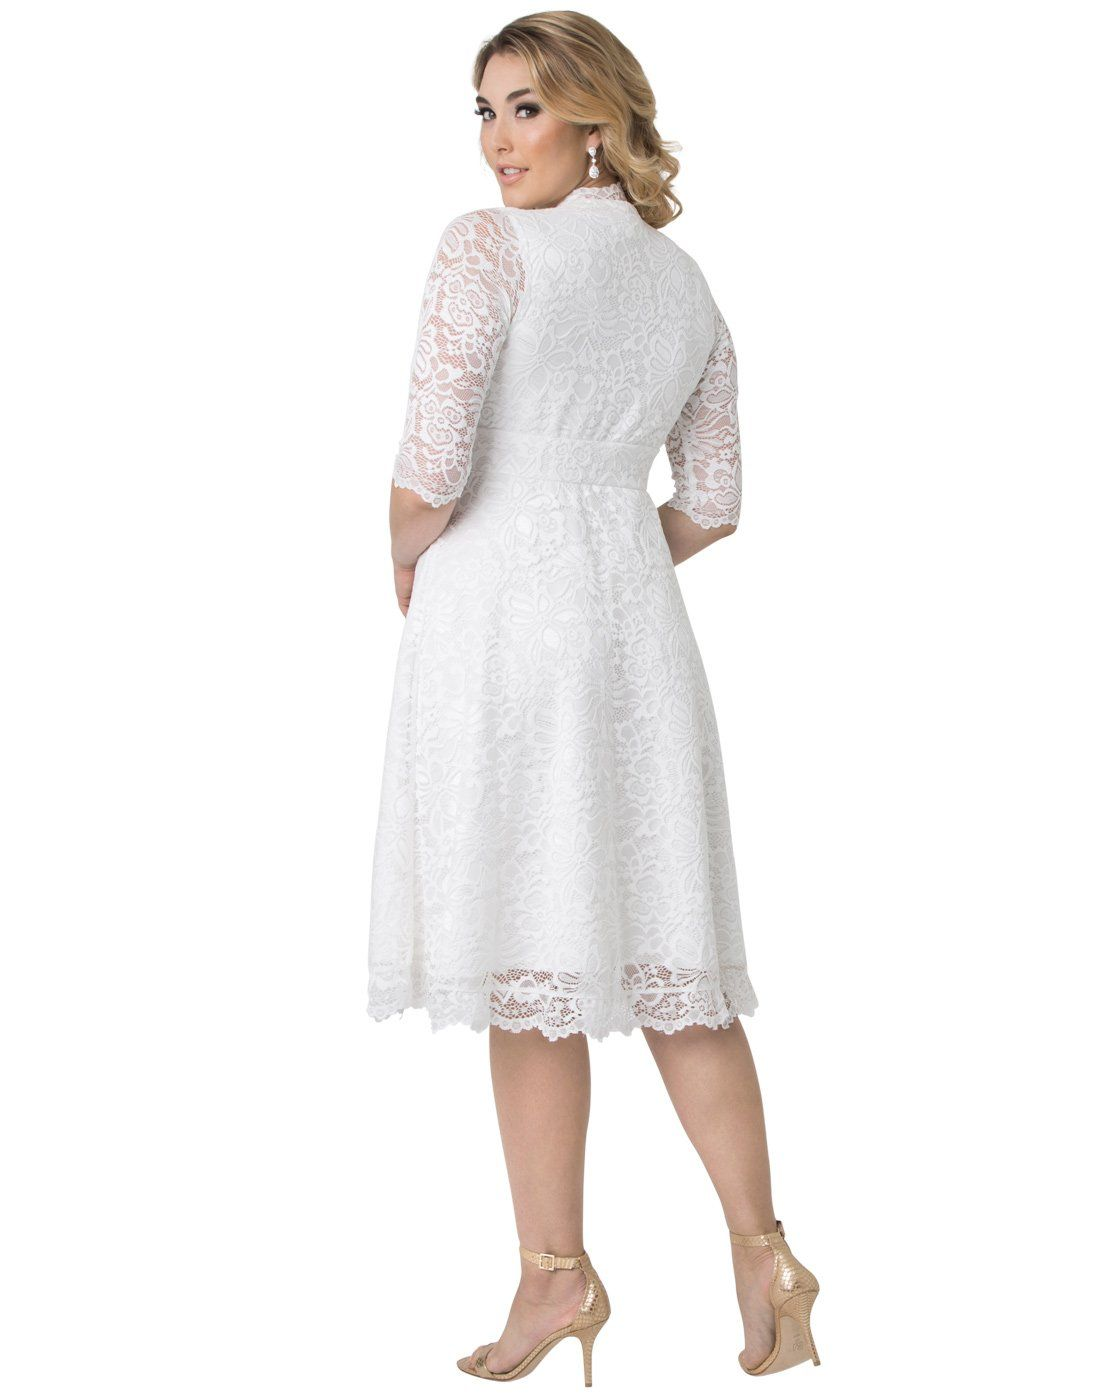 5fe48a84df2 Kiyonna Womens Plus Size Wedding Belle Dress 2X Ivory     Click image to  review more details. (This is an affiliate link)  fashiondresses